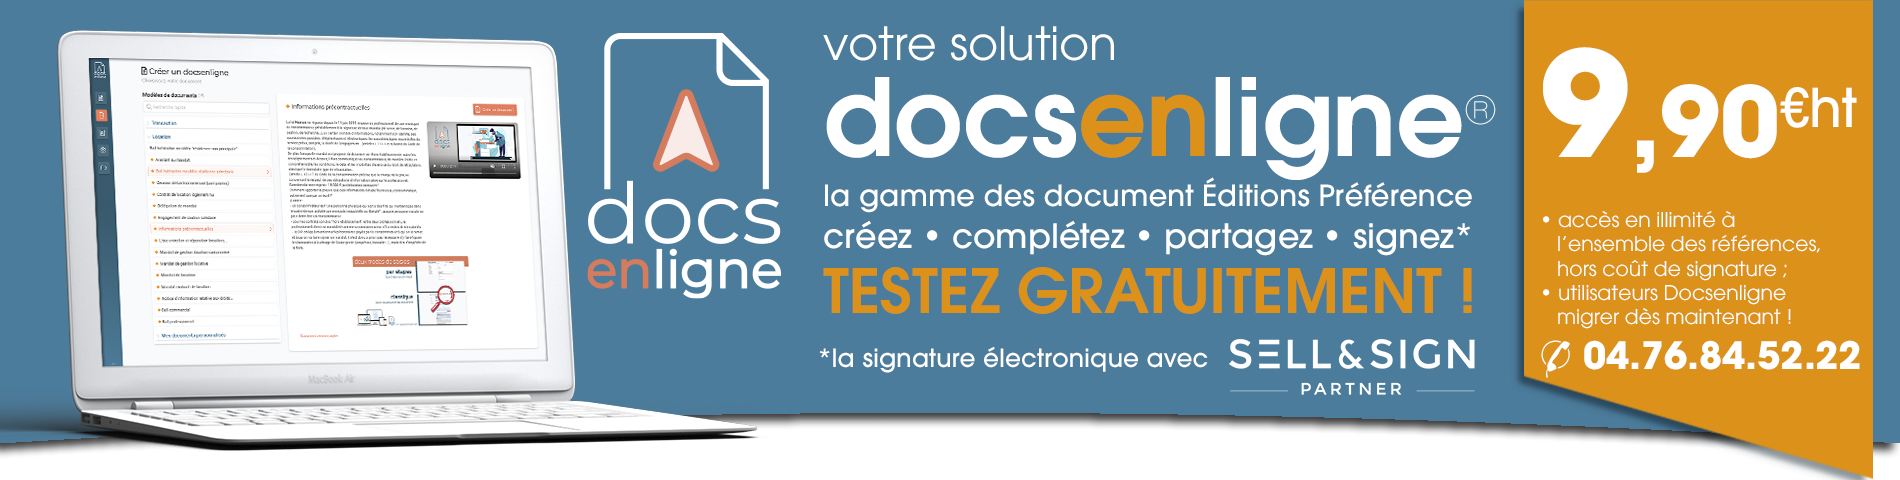 Docsenligne nouvelle version